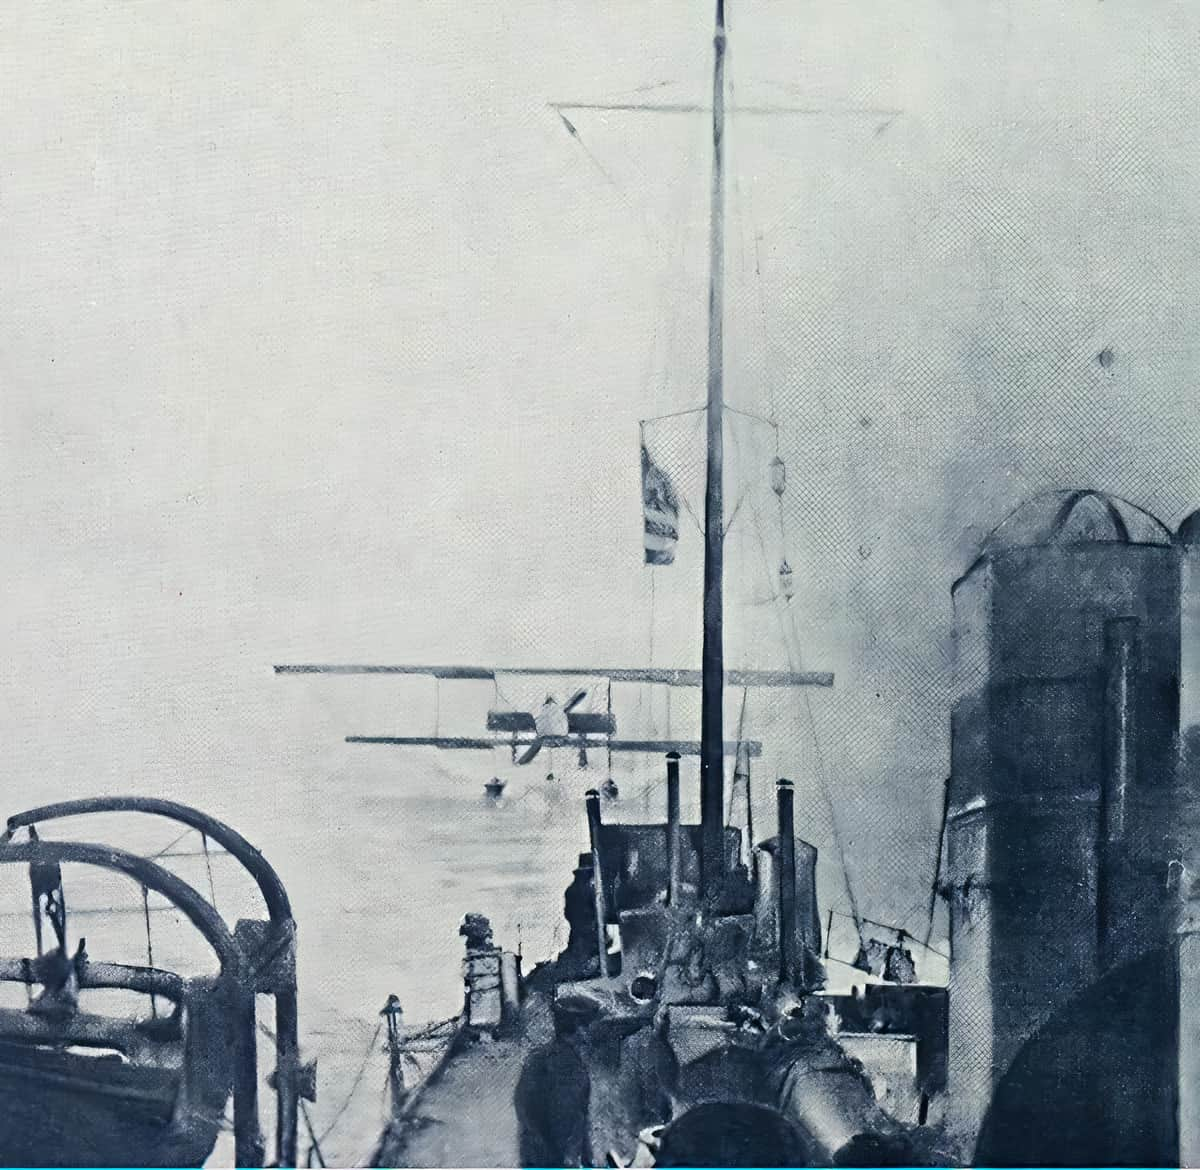 The Farman MF.7 of Moutoussis and Moraitinis collected by Velos after their Dardanelles mission, 1913